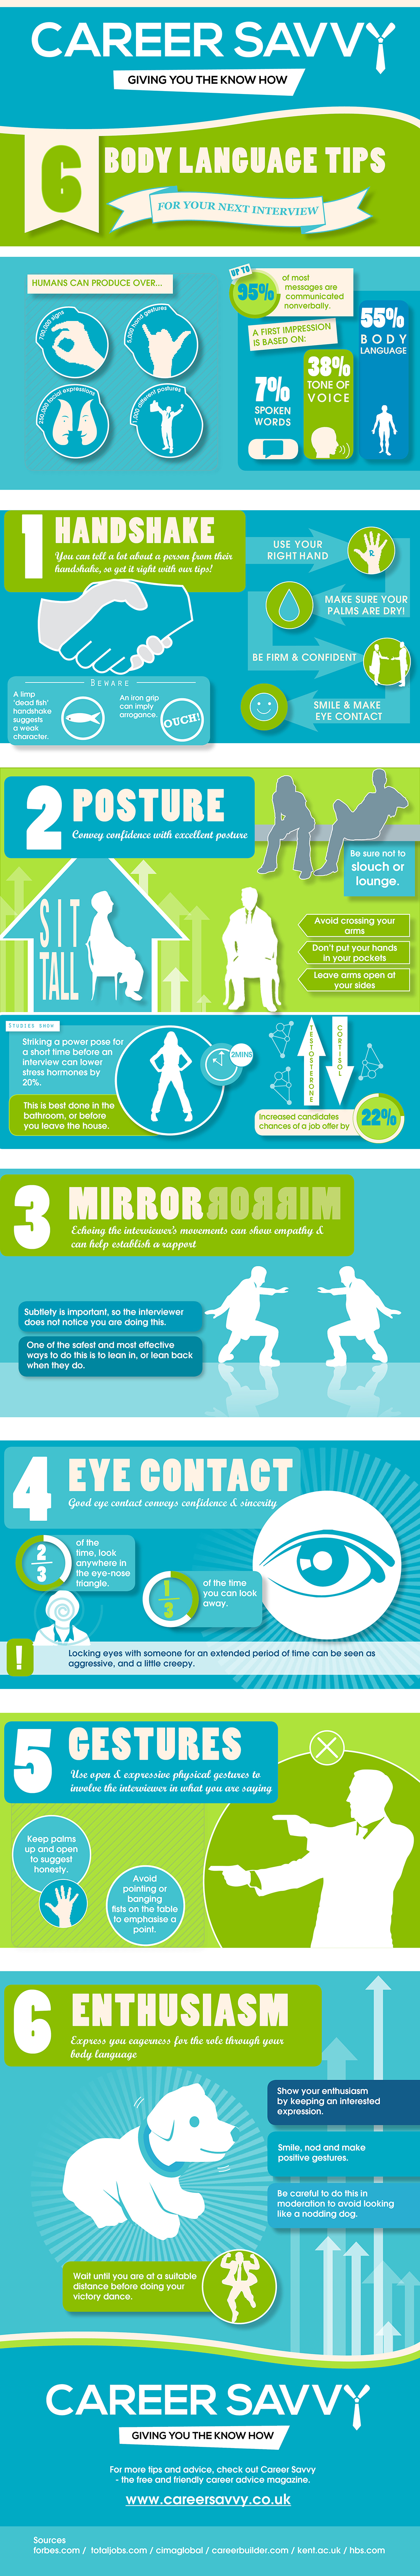 6 Body Language Tips For Your Next Interview [Infographic]